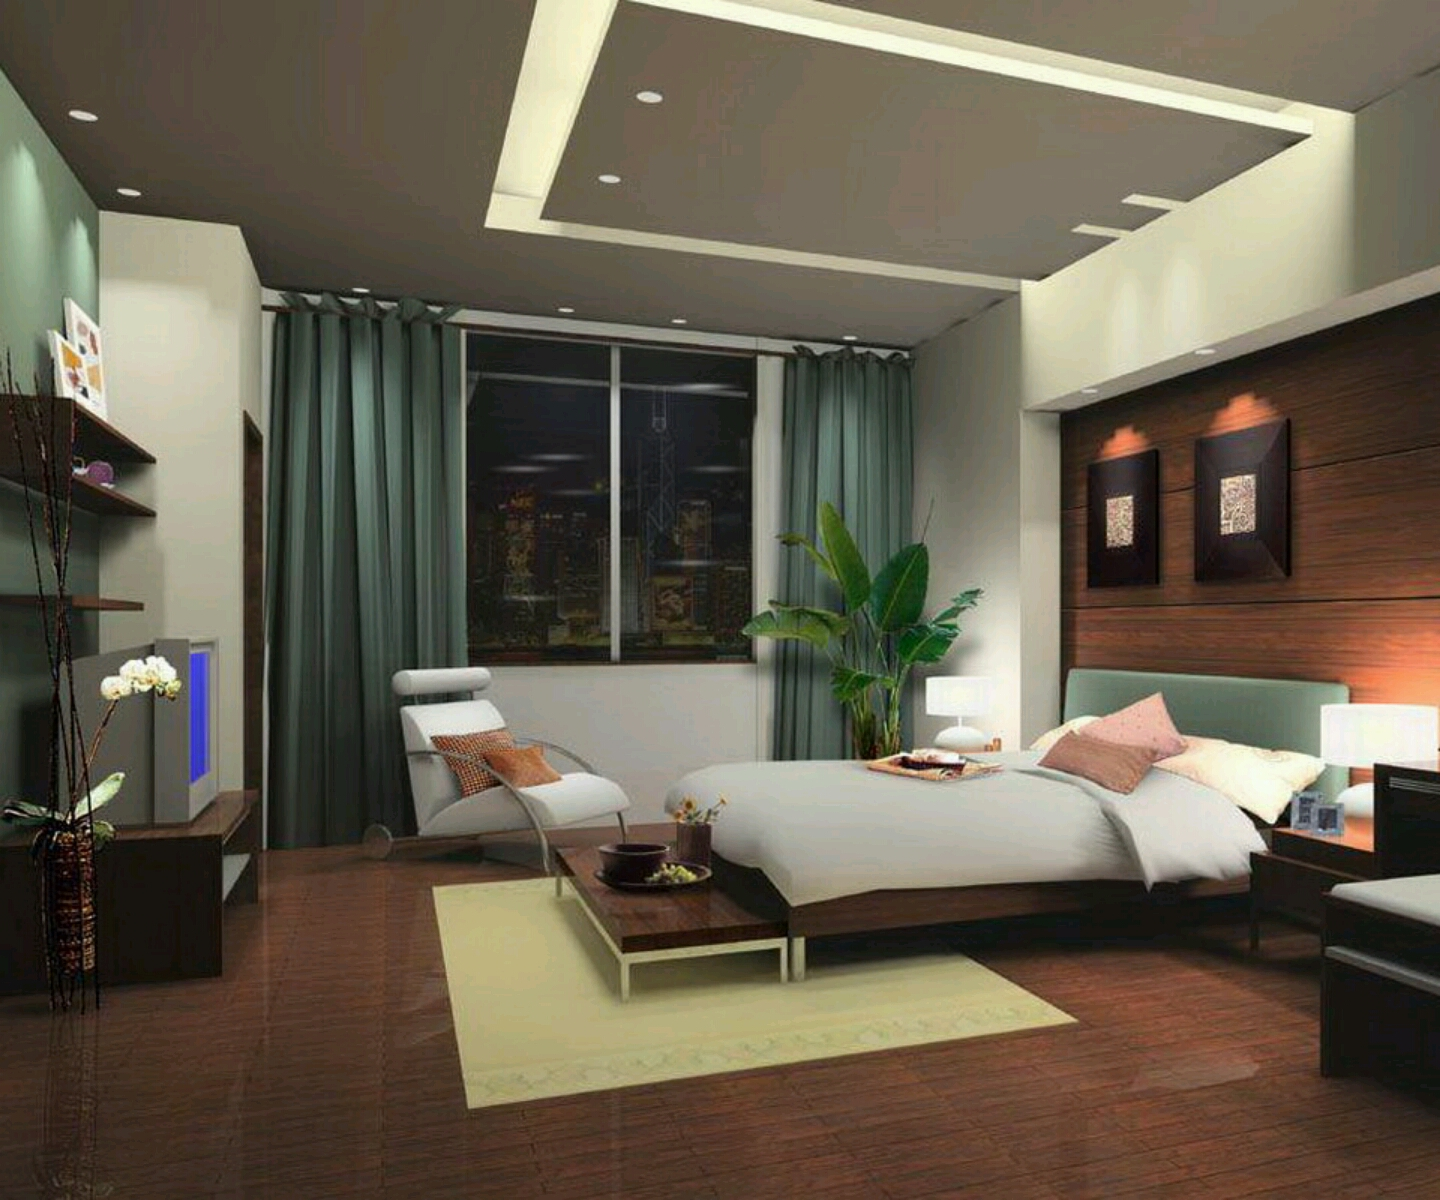 New home designs latest modern bedrooms designs best ideas for Best bedroom